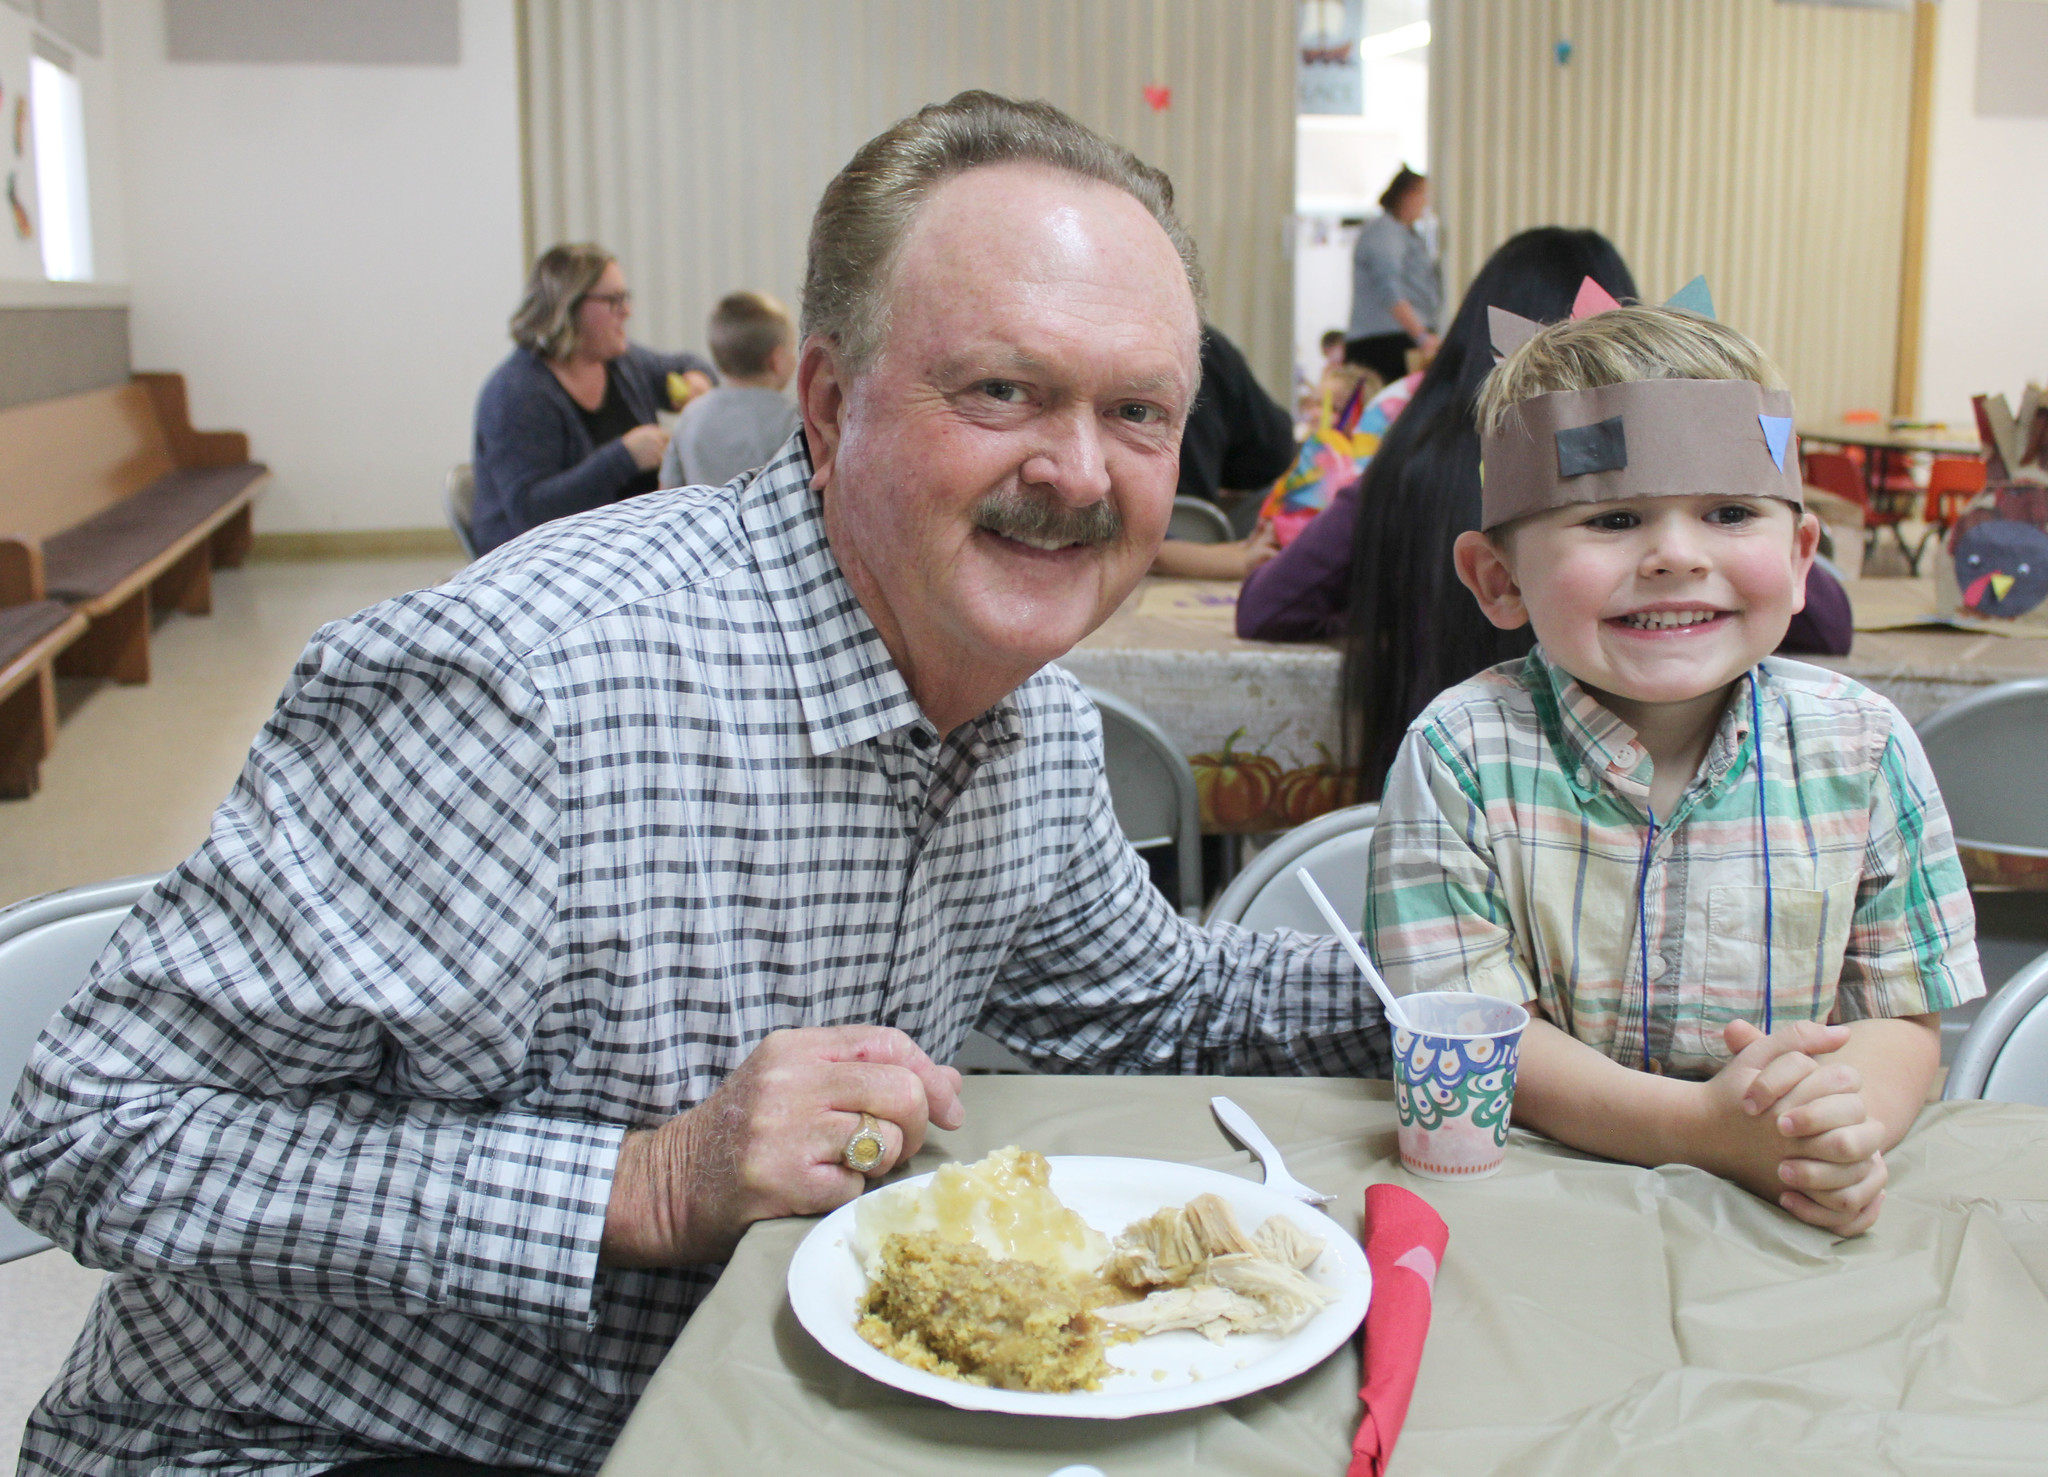 Ronnie Pritchett and his grandson James Fairbanks, 3, enjoy their time at the traditional Thanksgiving meal.